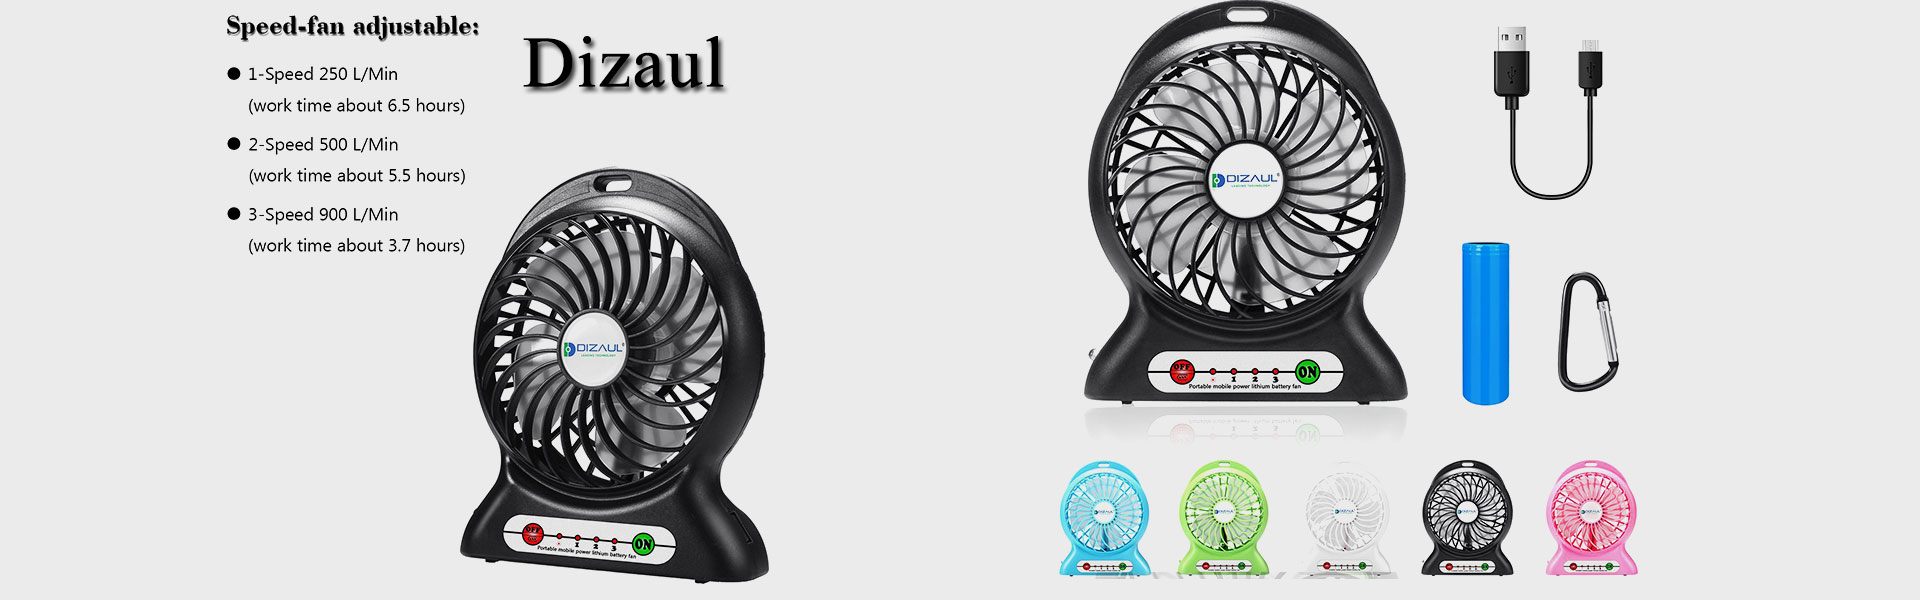 Portable Fan, Dizaul mini usb rechargeable fan with 2600mAh Power Bank and Flash light,for Traveling,Fishing,Camping,Hiking,Backpacking,BBQ,Baby Stroller,Picnic,Biking,Boating (Black)